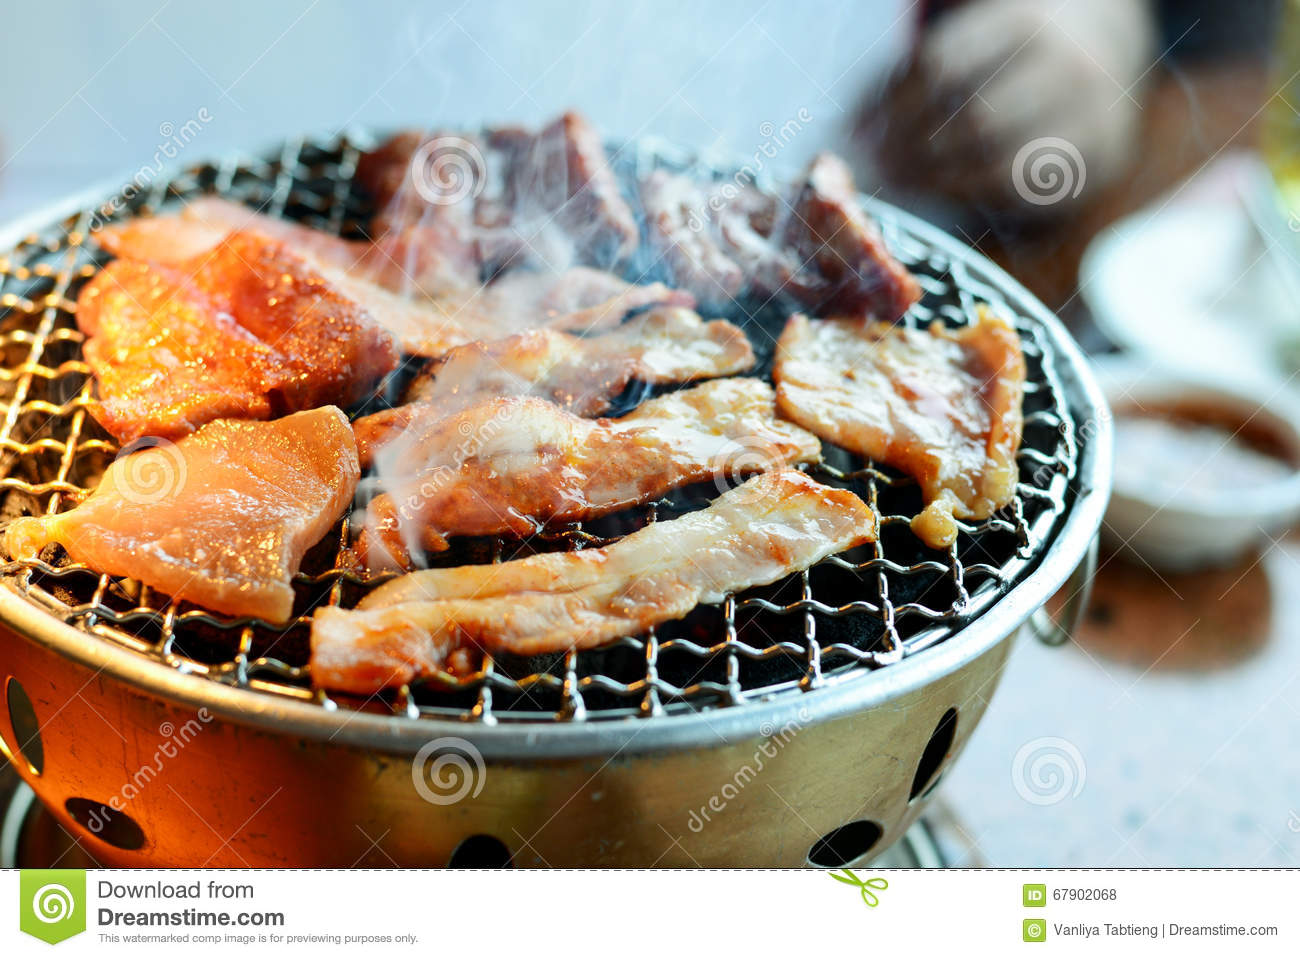 This kind of food is a Korean BBQ; Beef and Pork grill on hot co